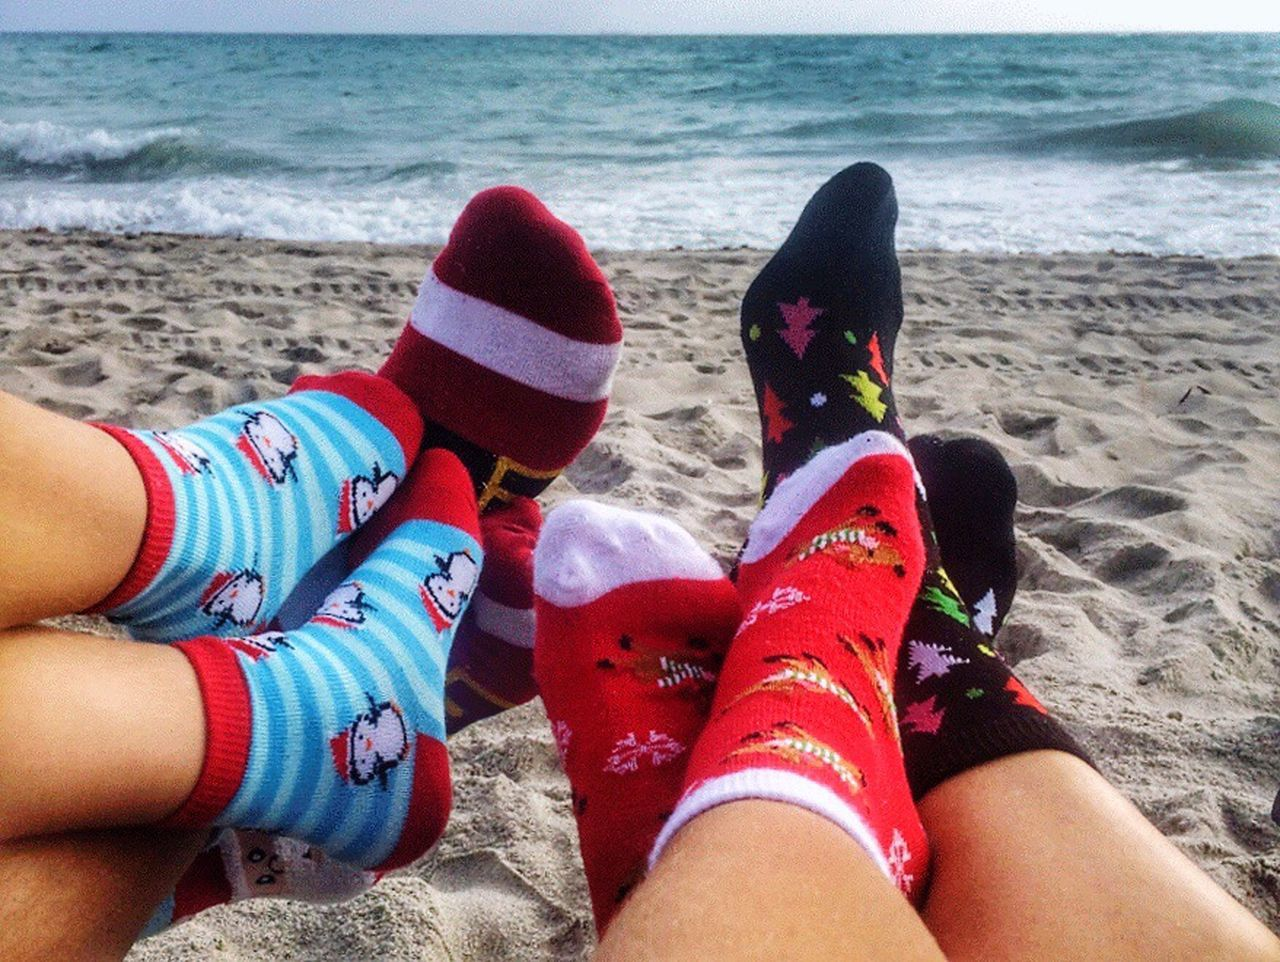 TK Maxx Socksie Leisure Activity Day Low Section Sea Lifestyles Outdoors Real People Water Togetherness Nature Human Body Part People Ocean Beach Feet Socks Winter Christmas